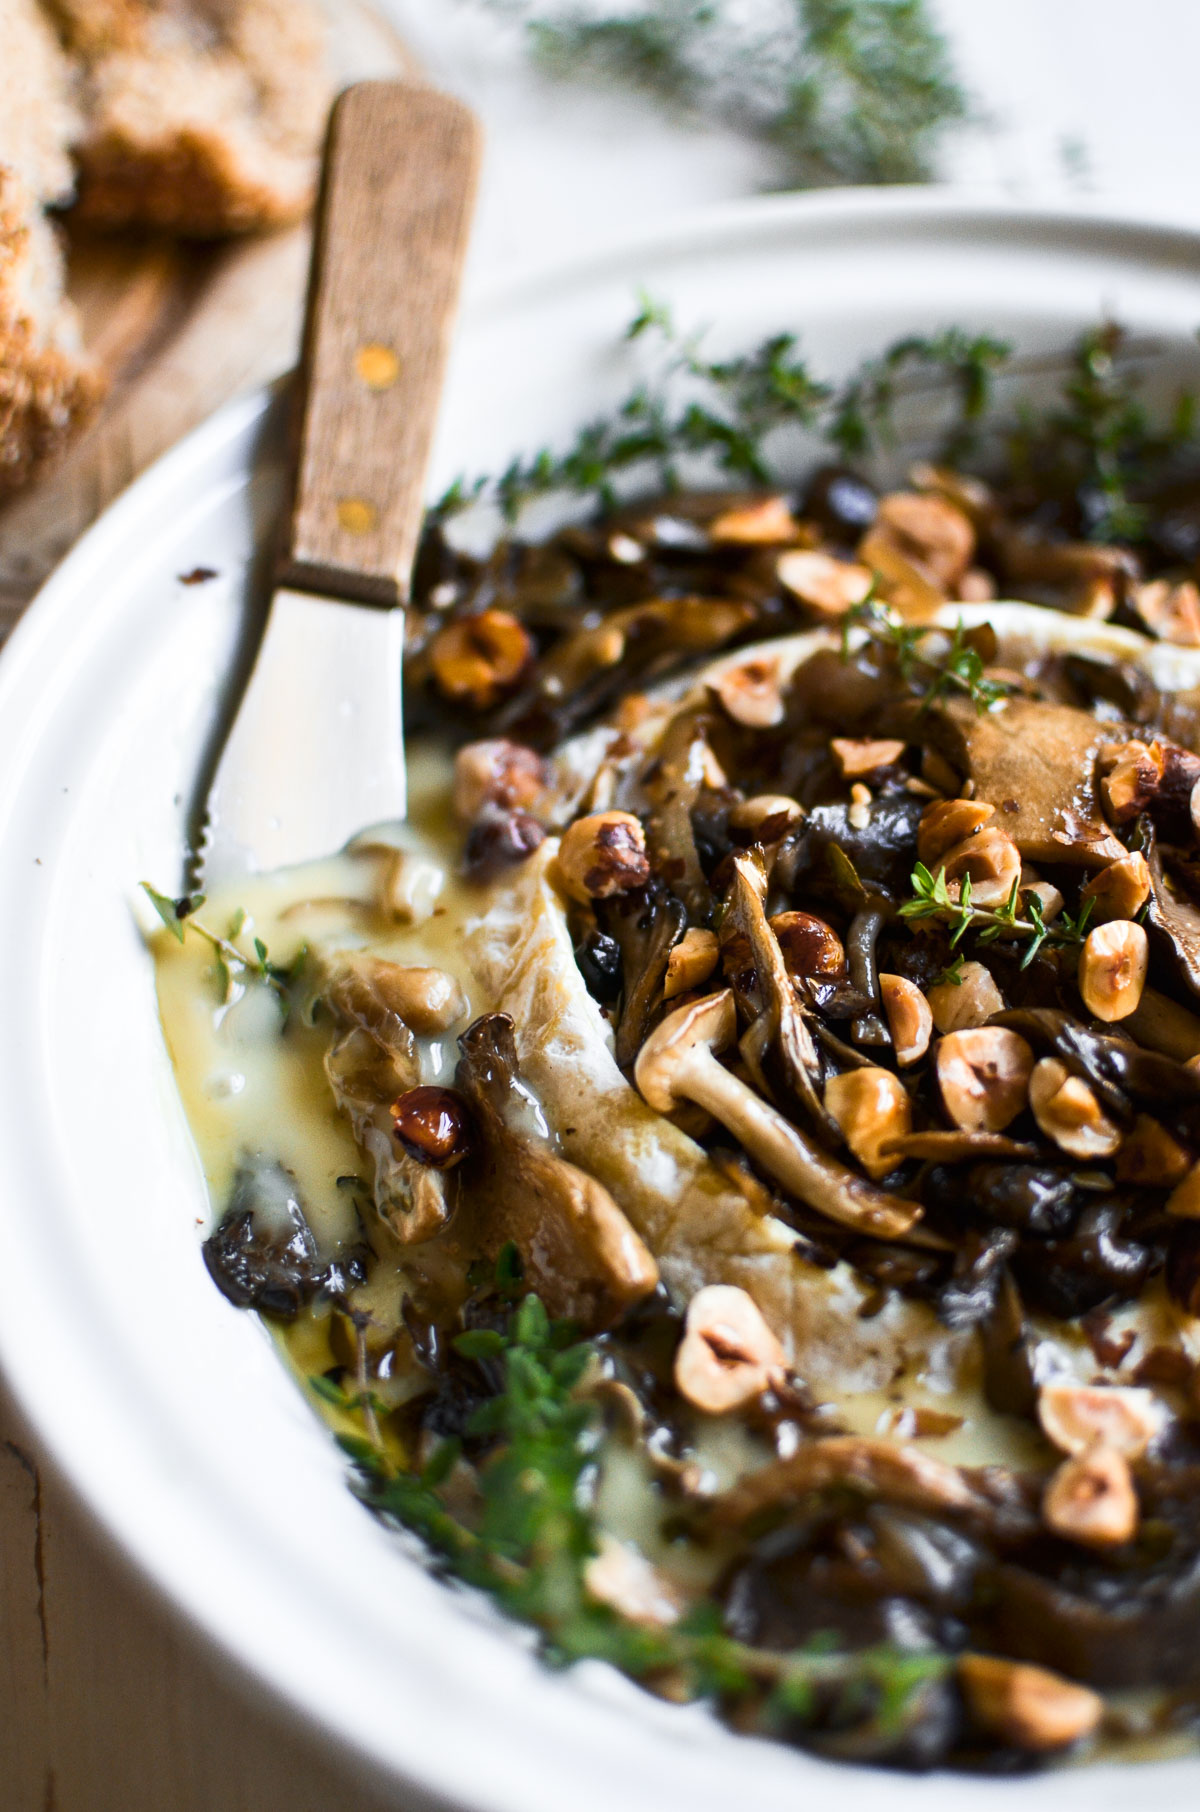 baked brie with mushrooms and hazelnuts